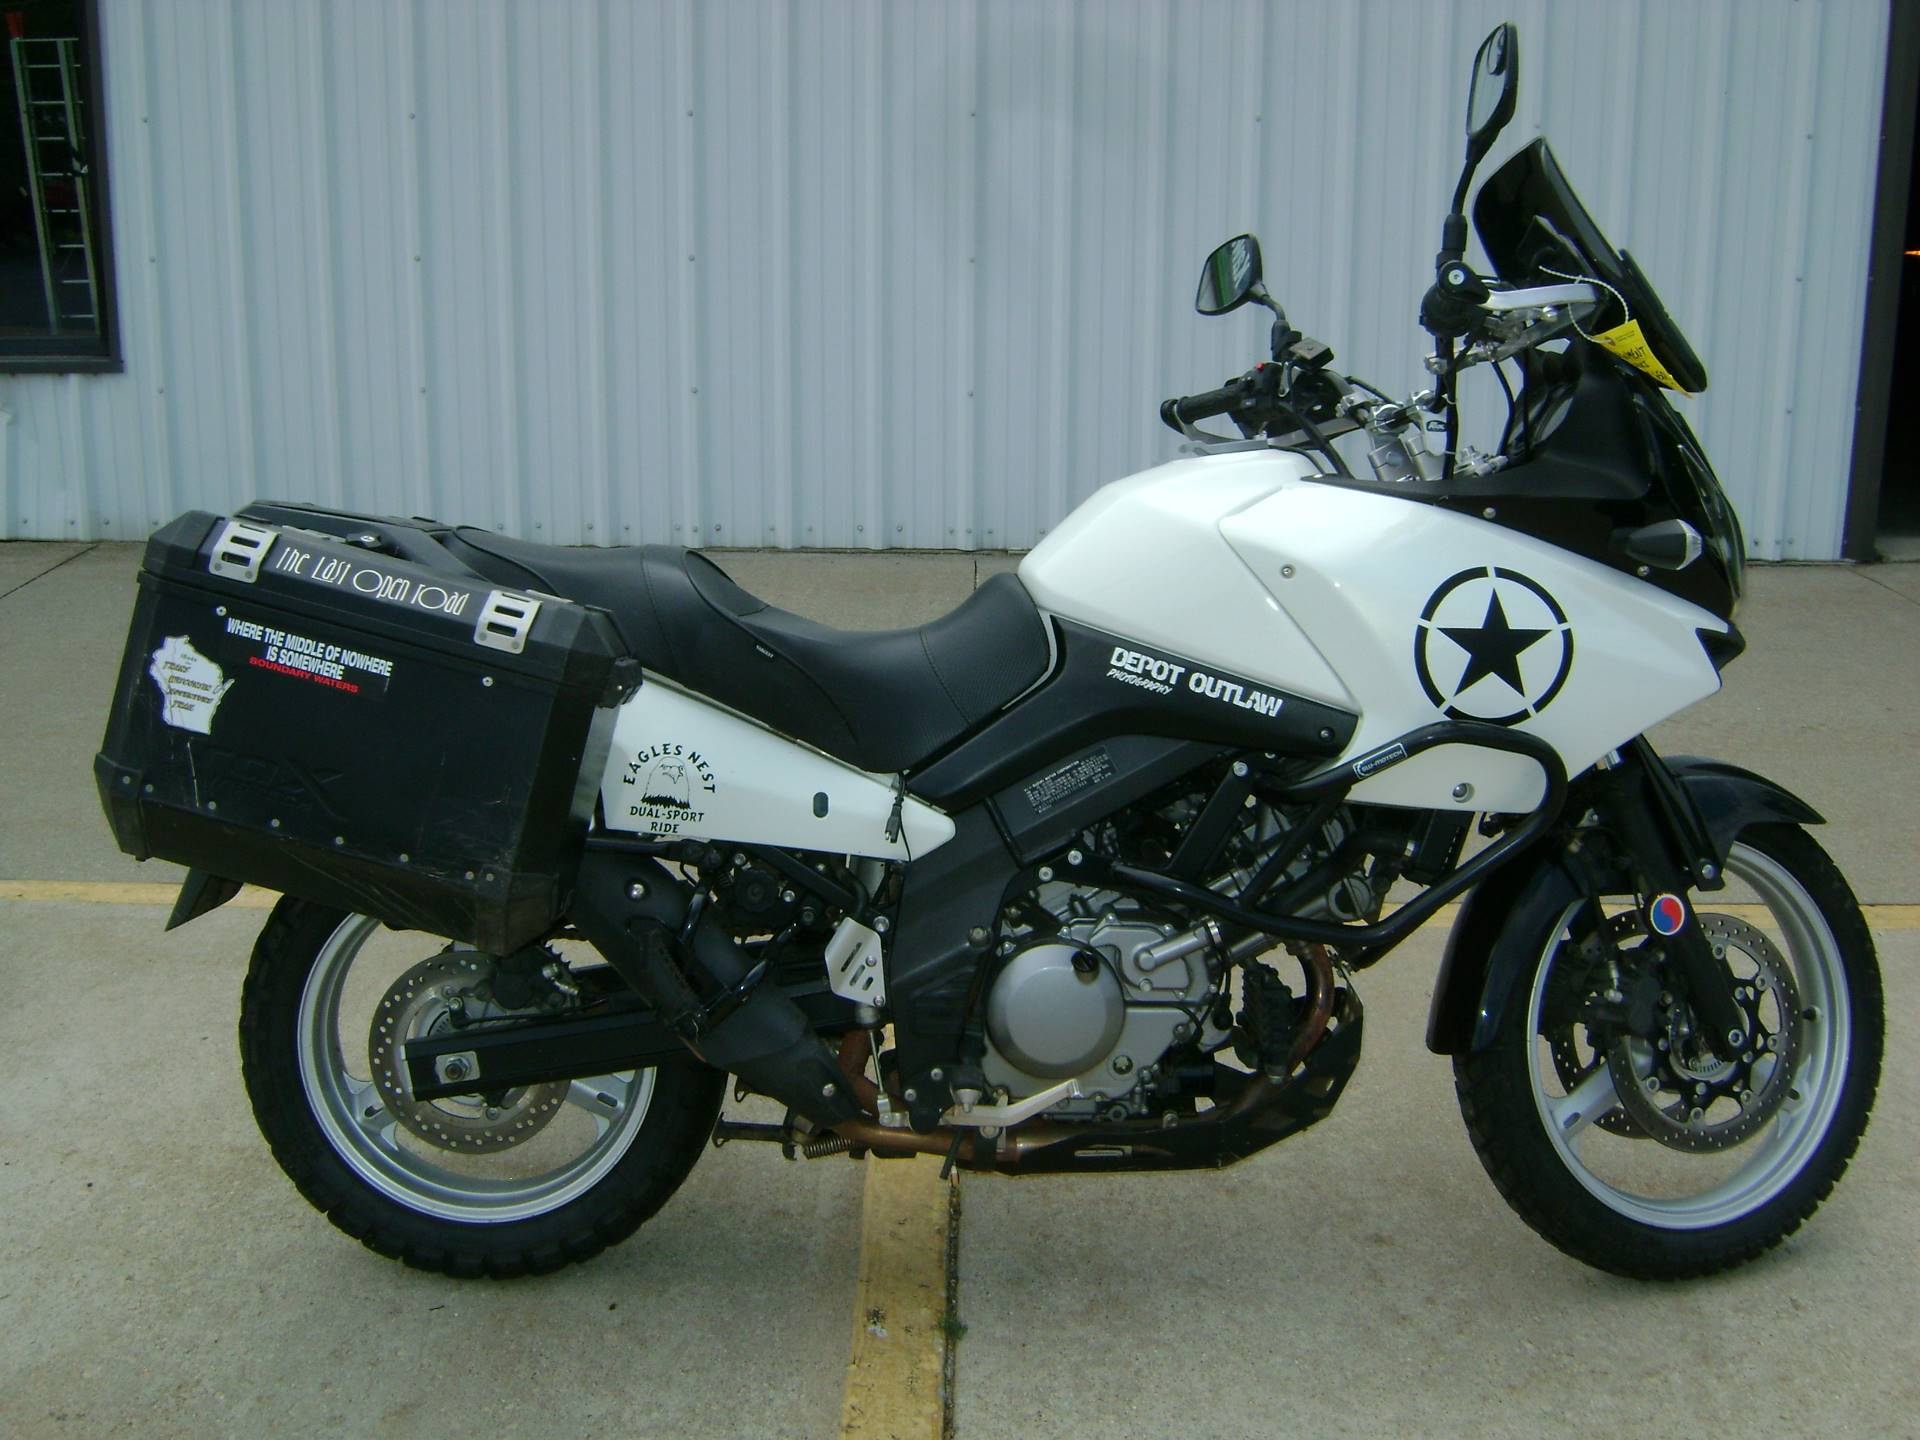 2011 Suzuki V-STROM 650 in Freeport, Illinois - Photo 1